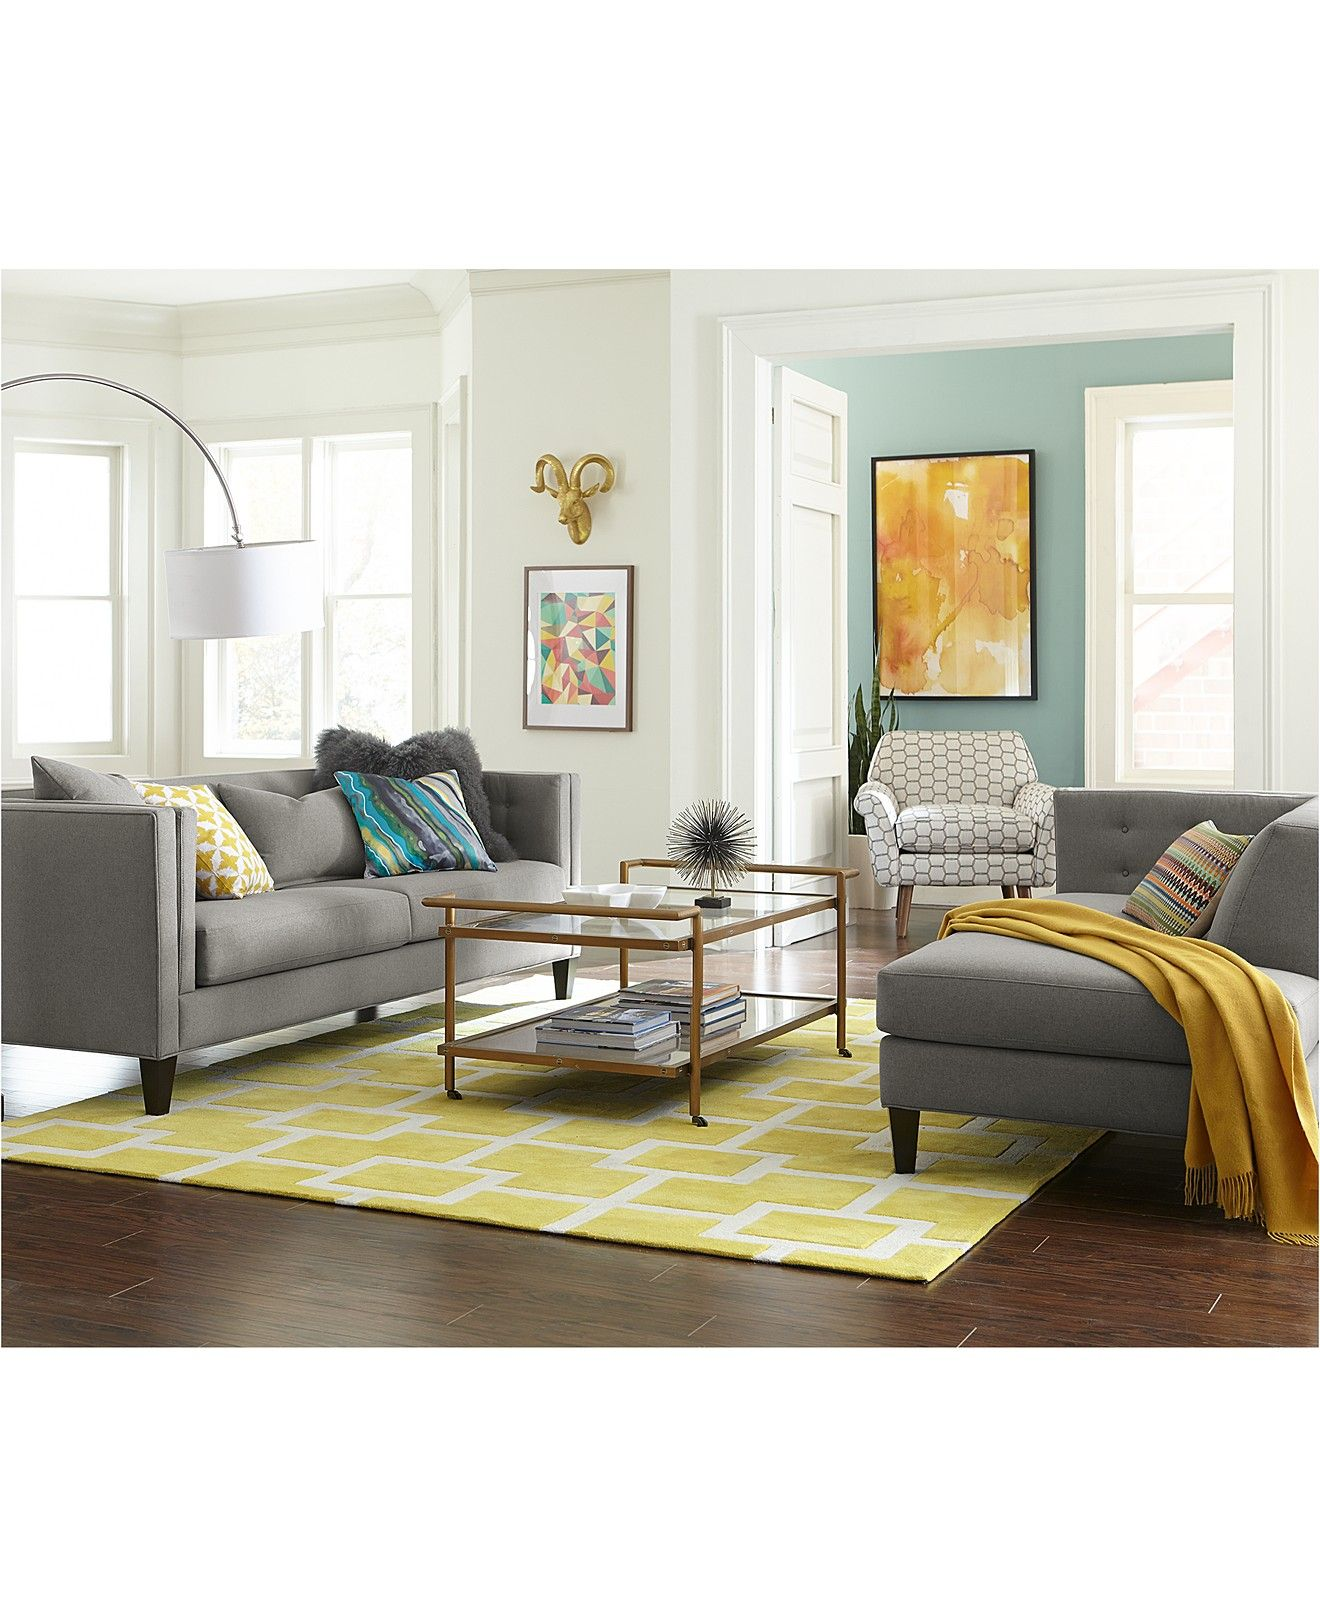 Braylei 88 Fabric Track Arm Sofa, Created For Macy's